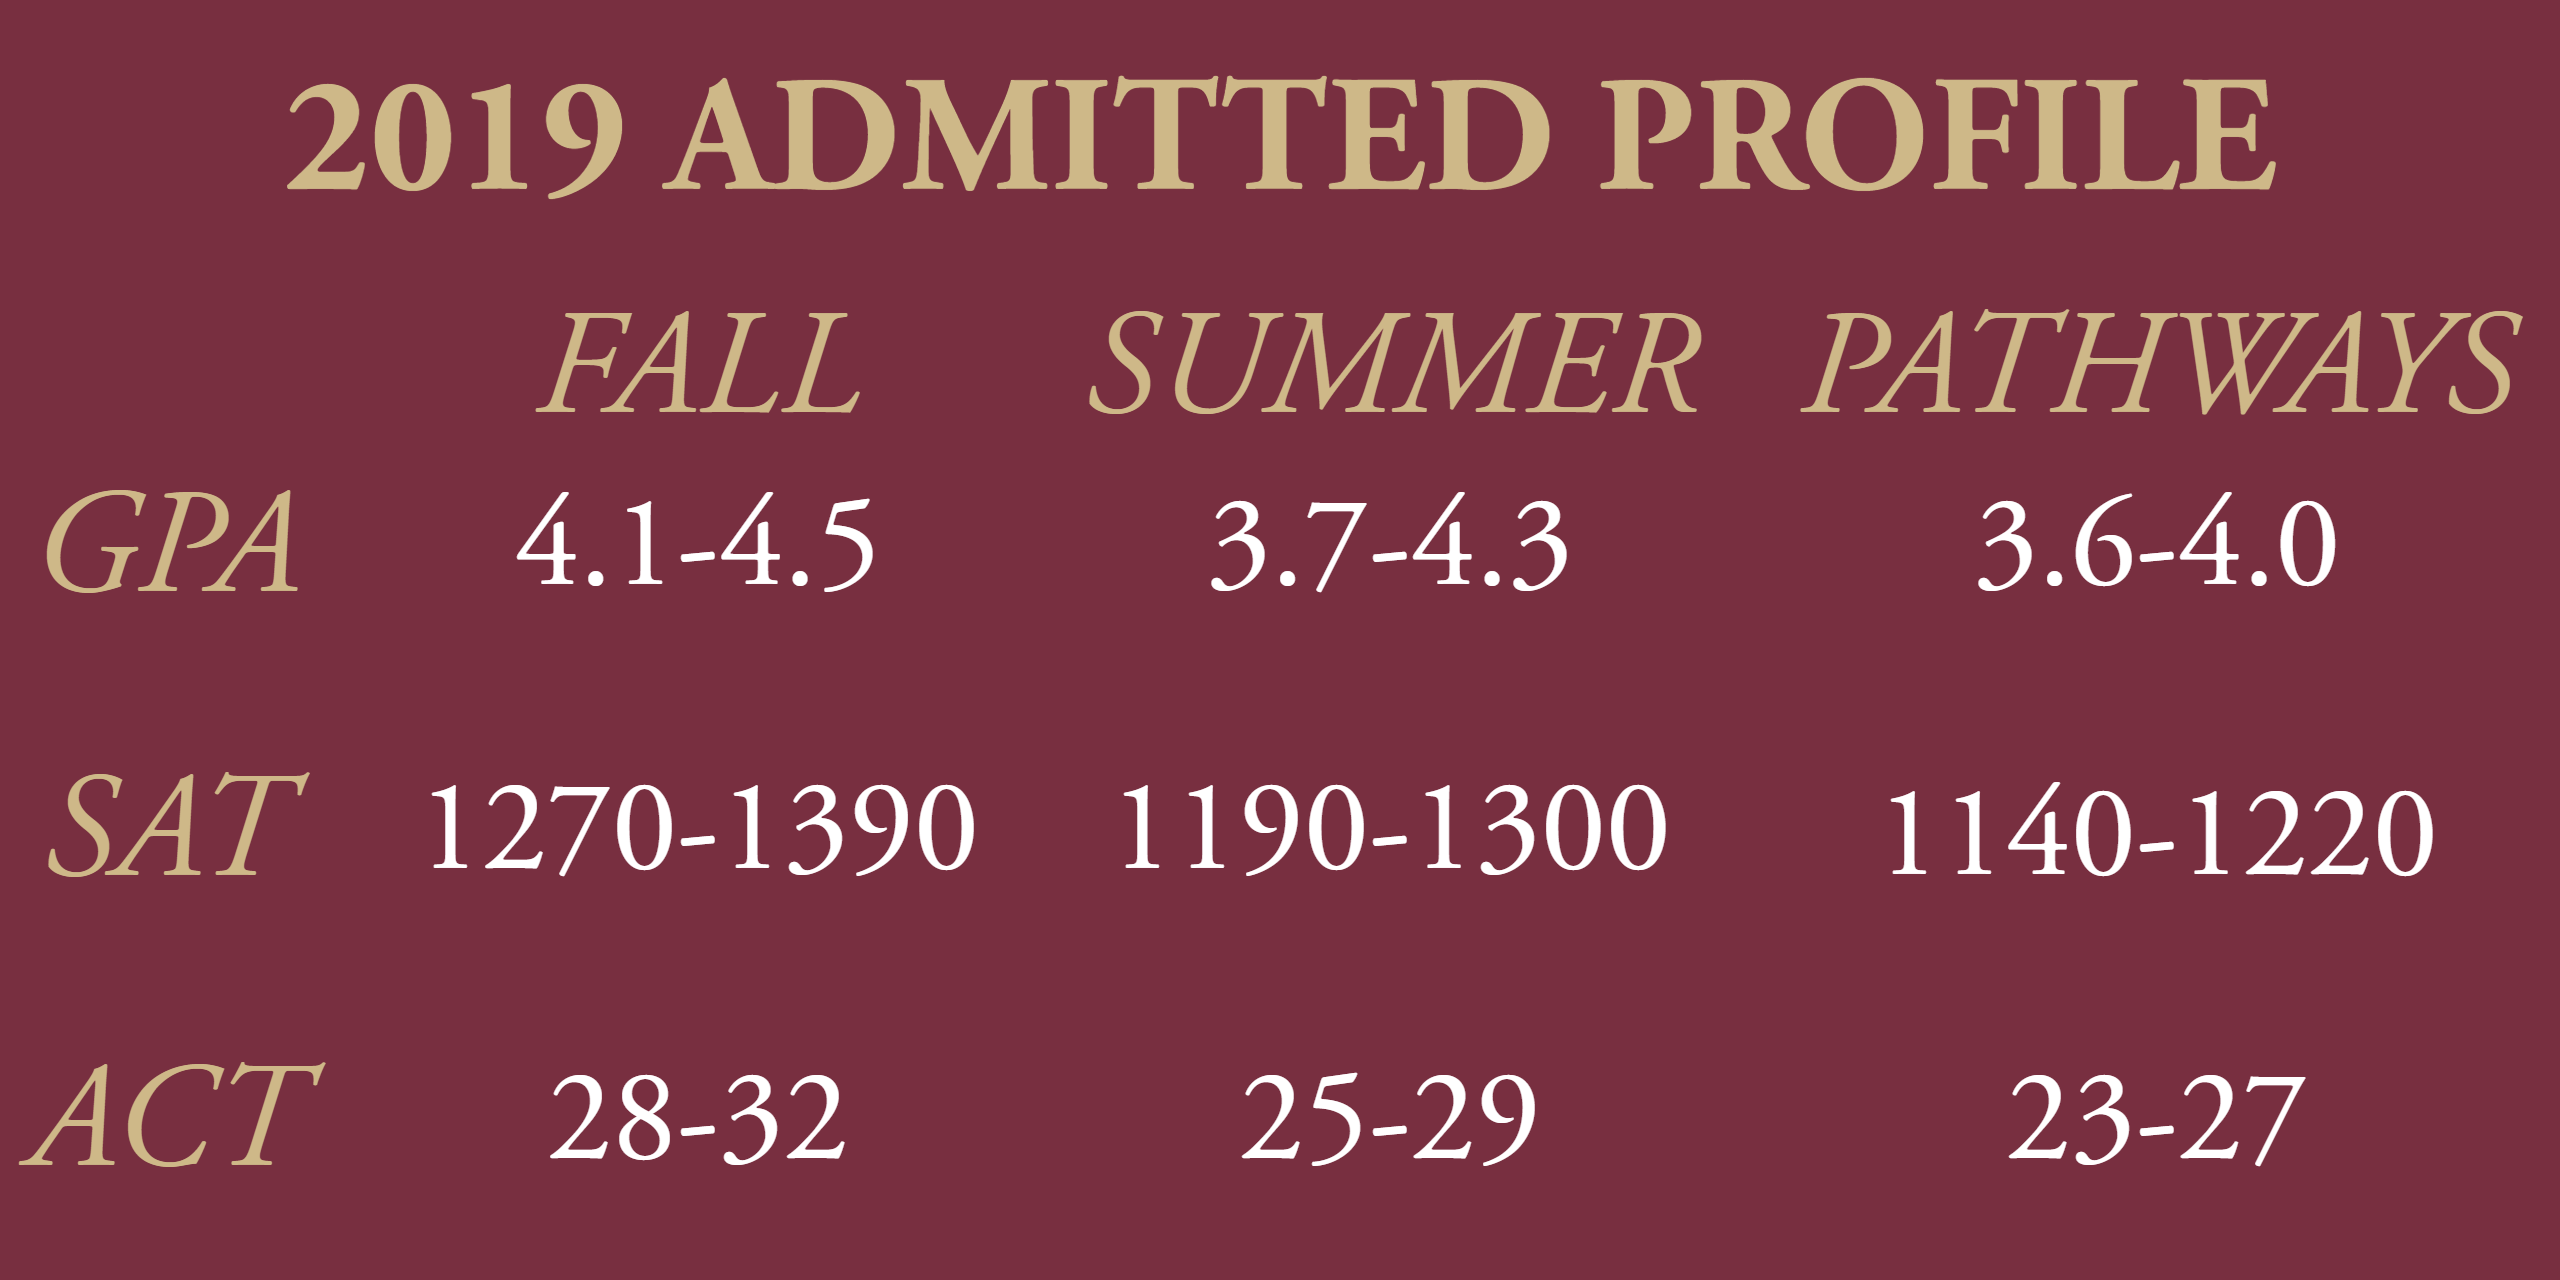 2019 Admitted Profile